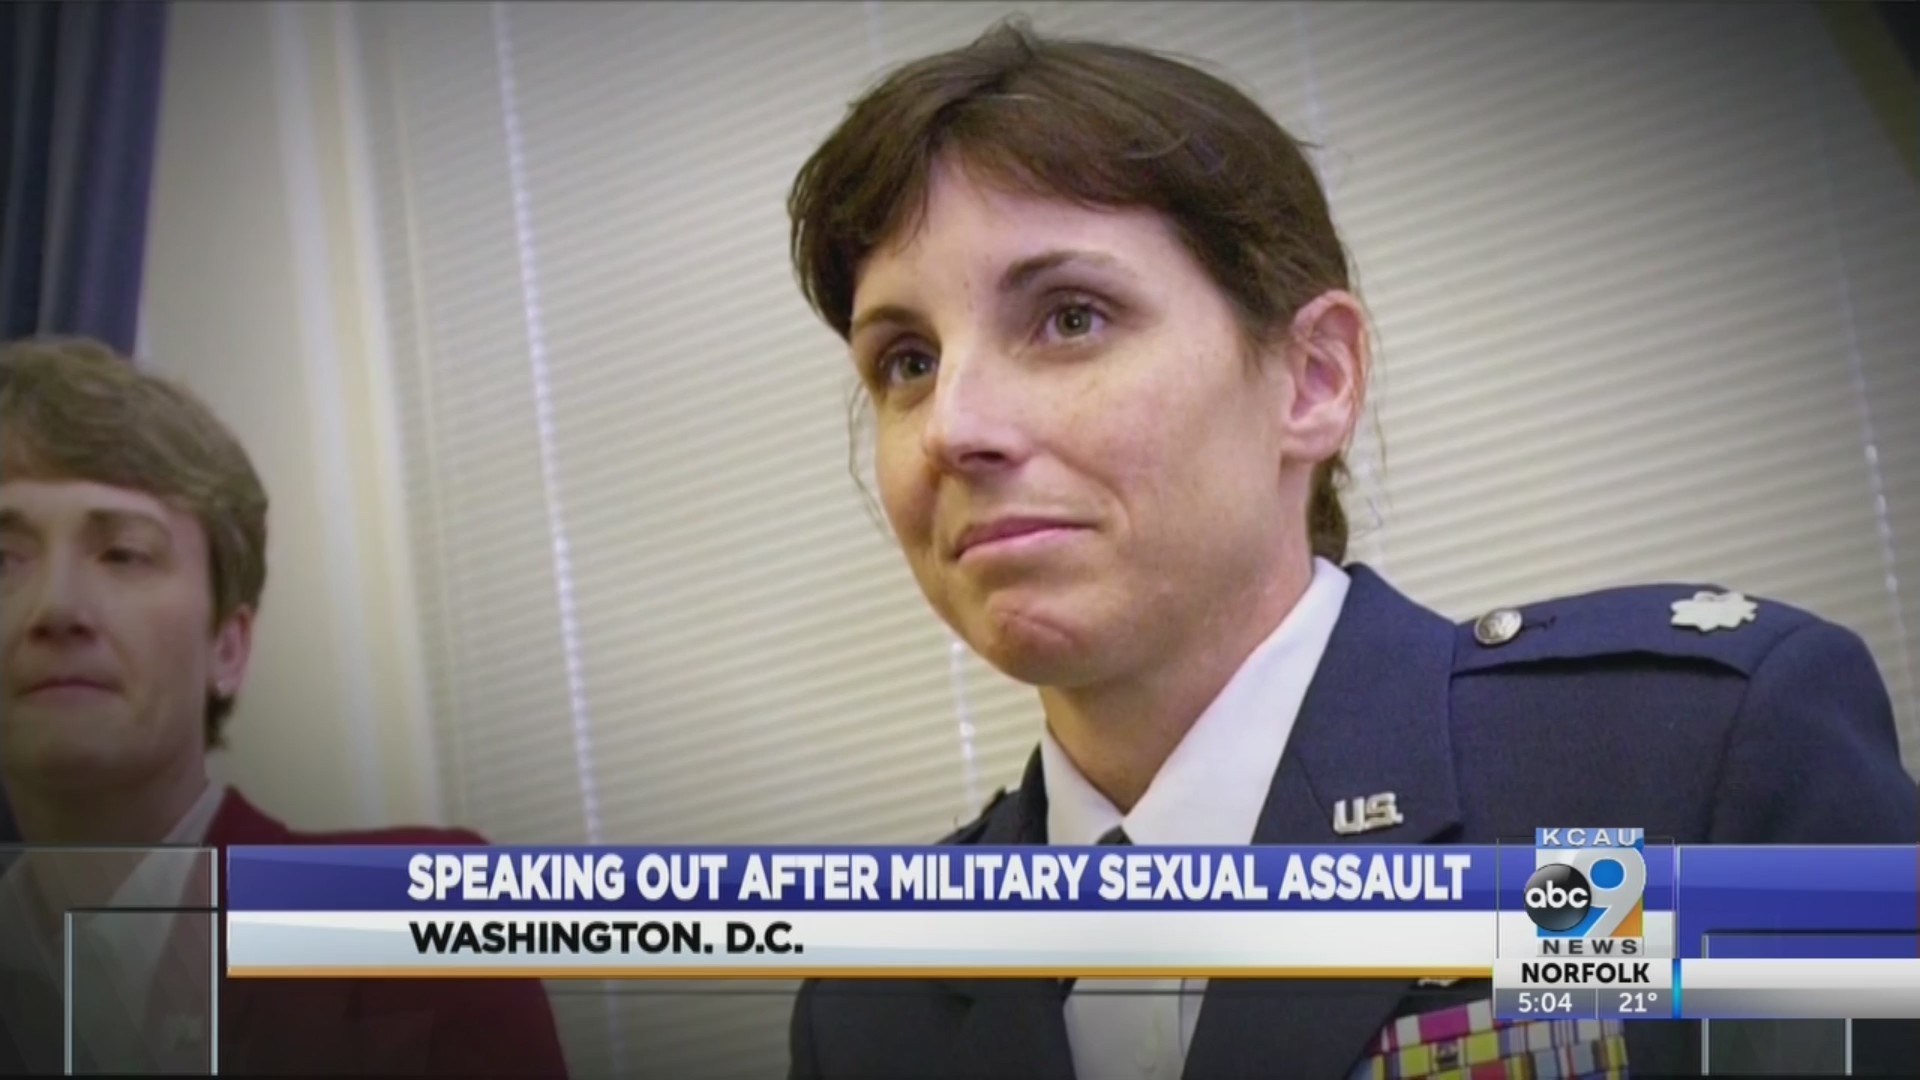 Speaking out after military sexual assault